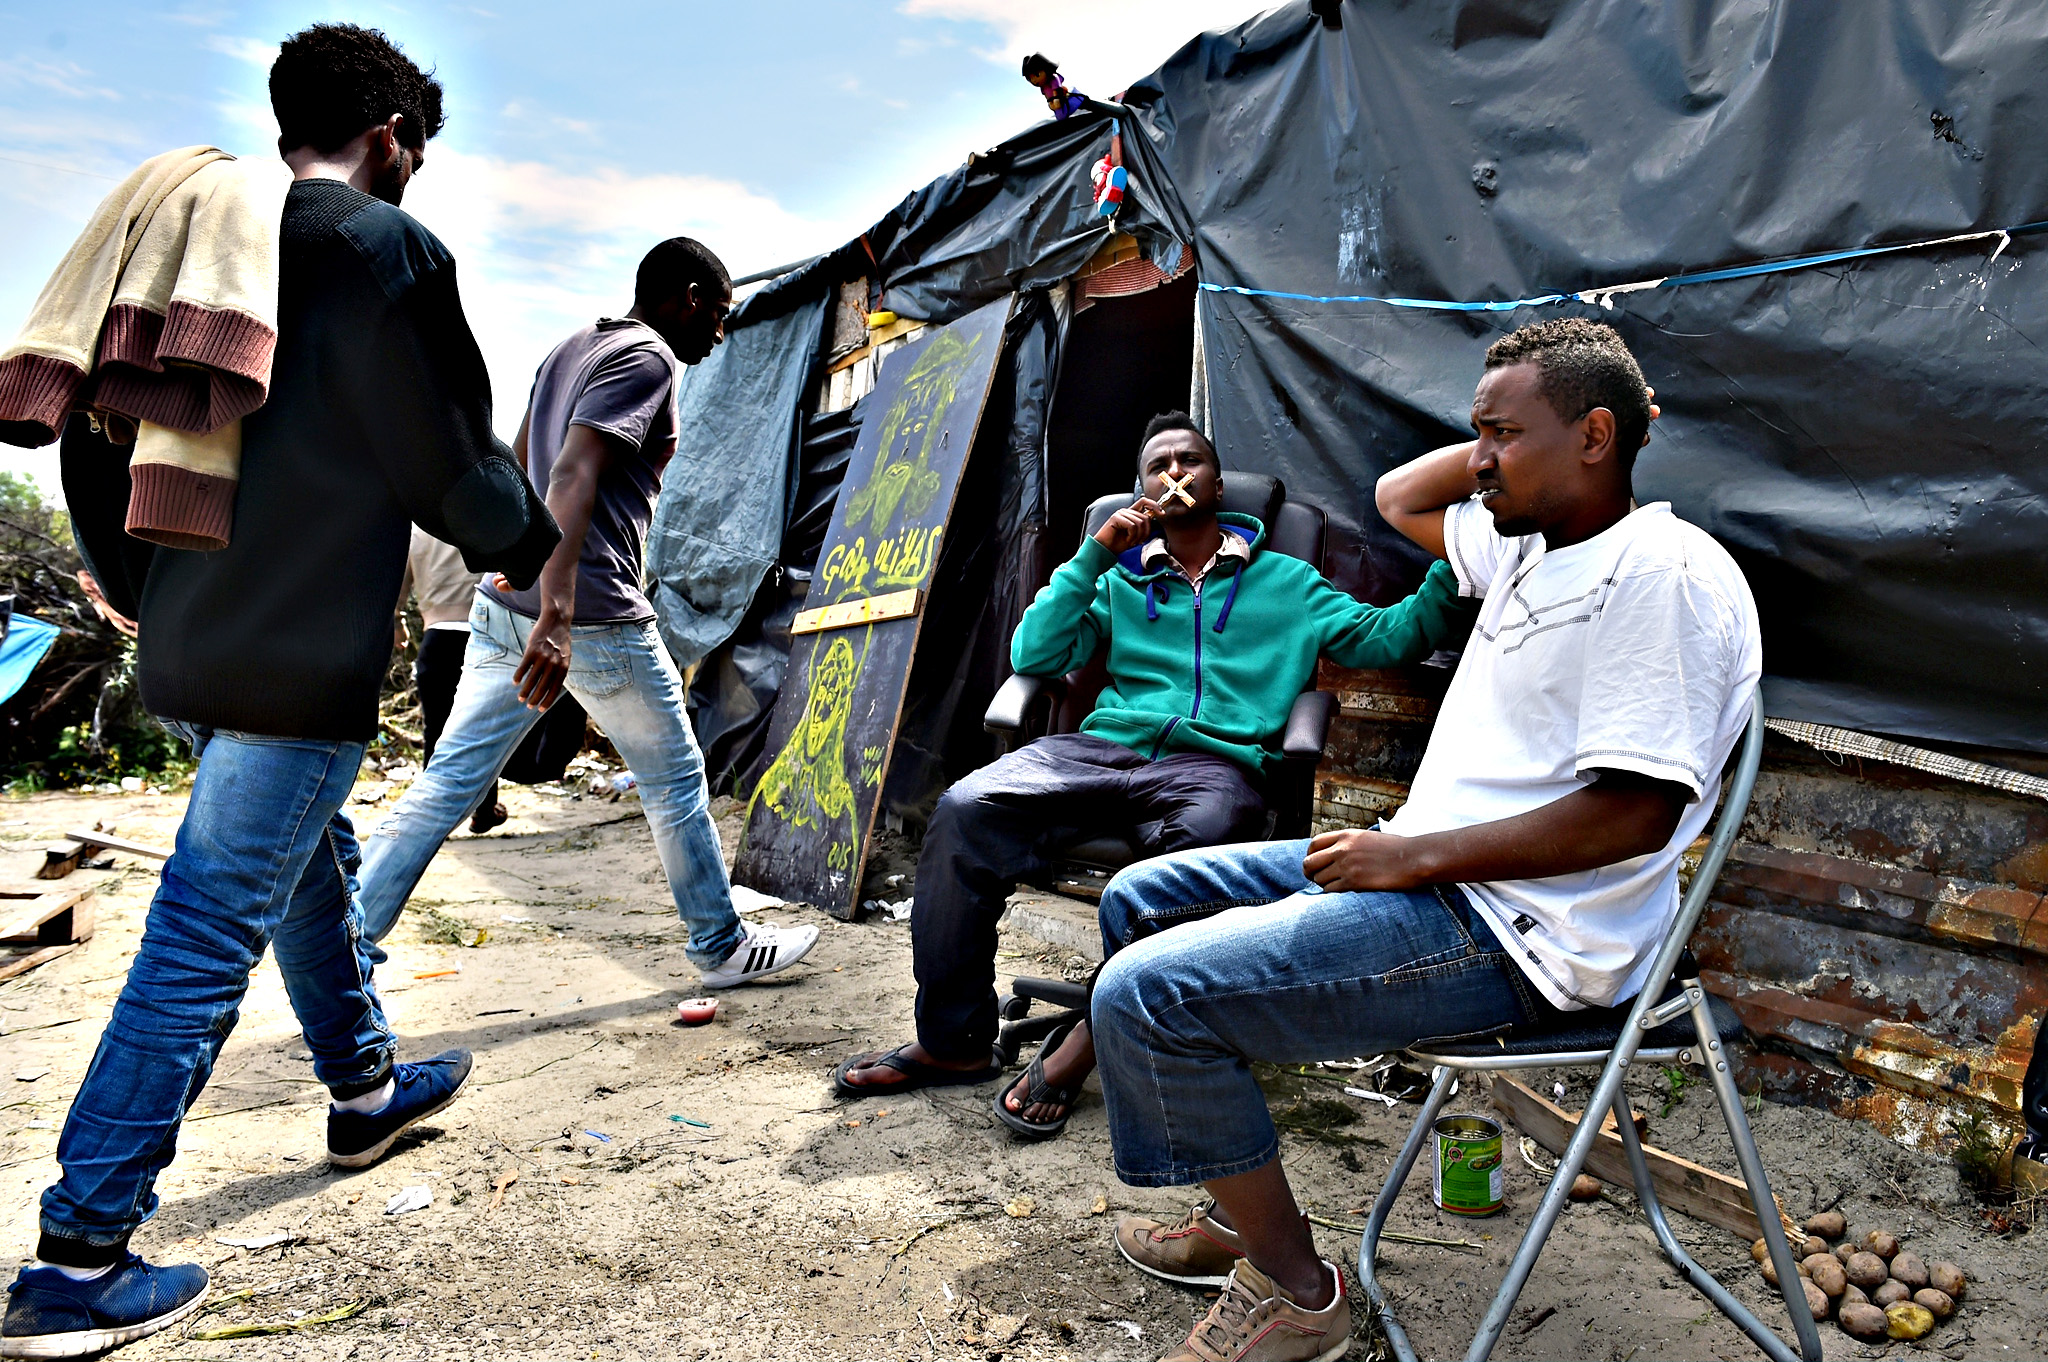 Migrants are seen in a make shift camp known as the 'New Jungle' on Thursday in Calais, France. Many migrants are camped in Calais on the side of the motorways as they attempt to board trucks stuck in slow moving traffic in the hope of making it into the UK